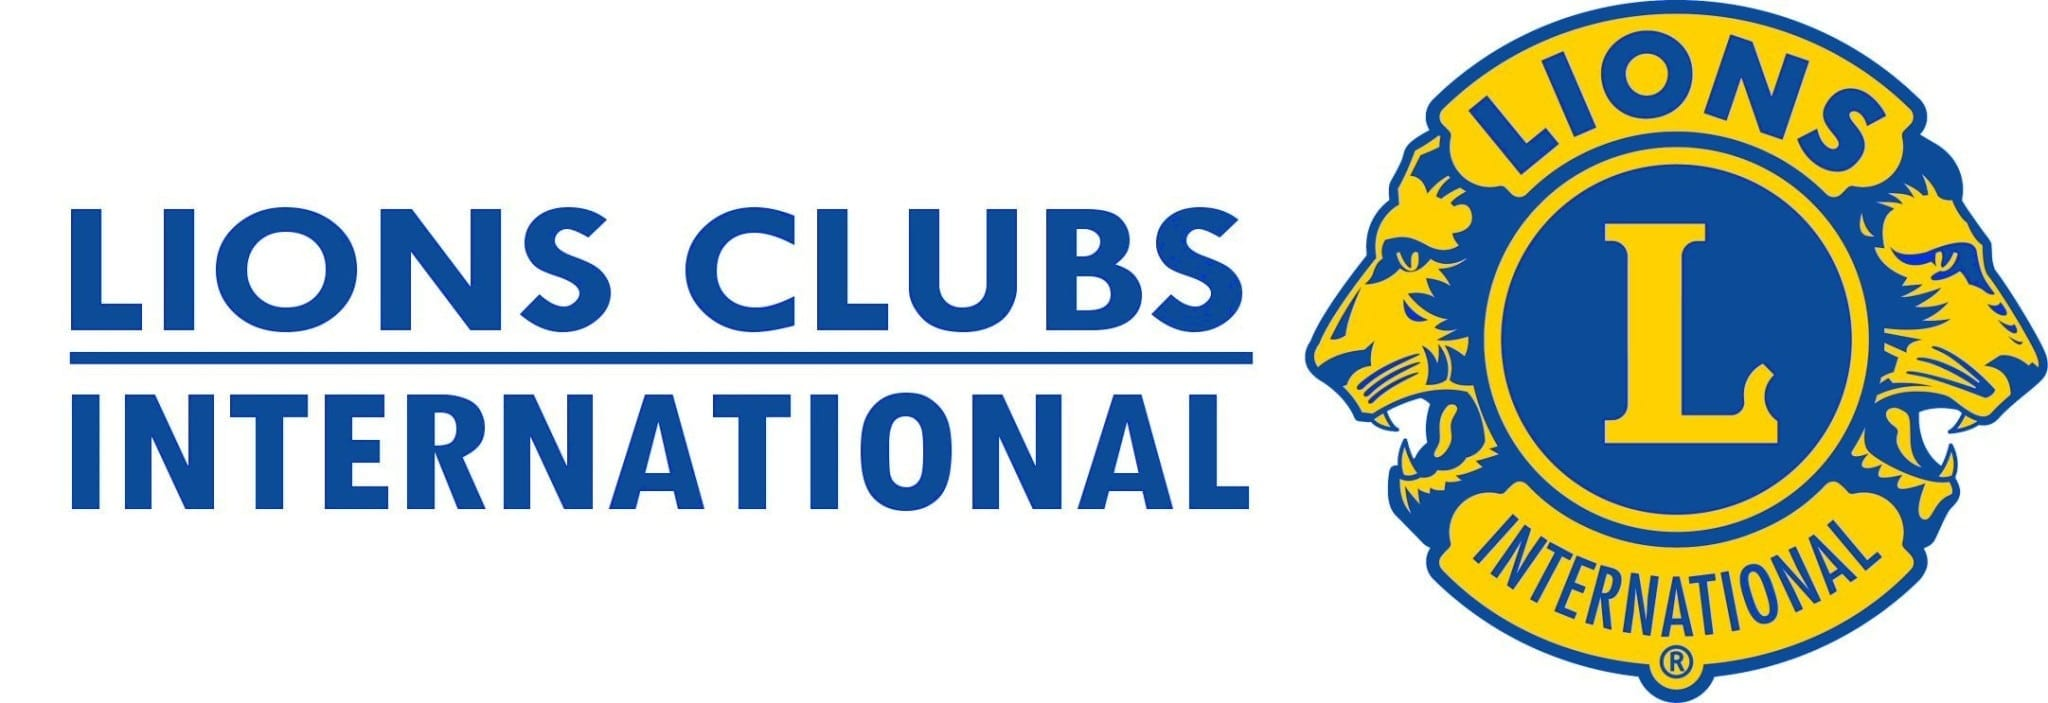 Image showing the lions club international logo